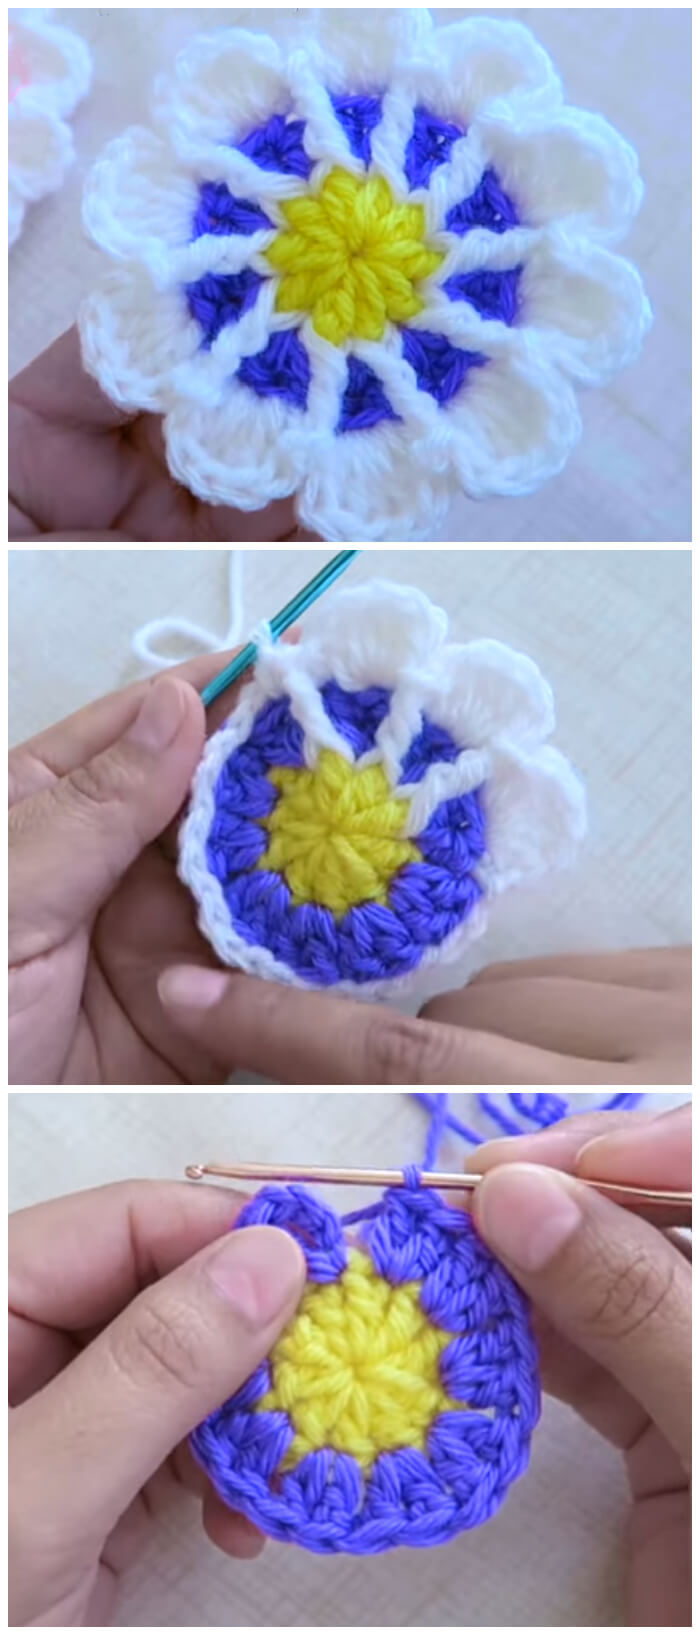 Crochet flower tutorials are so pretty to make. They may look simple but they can jazz up any plain old beanie, headband and bags and they are quick to make.